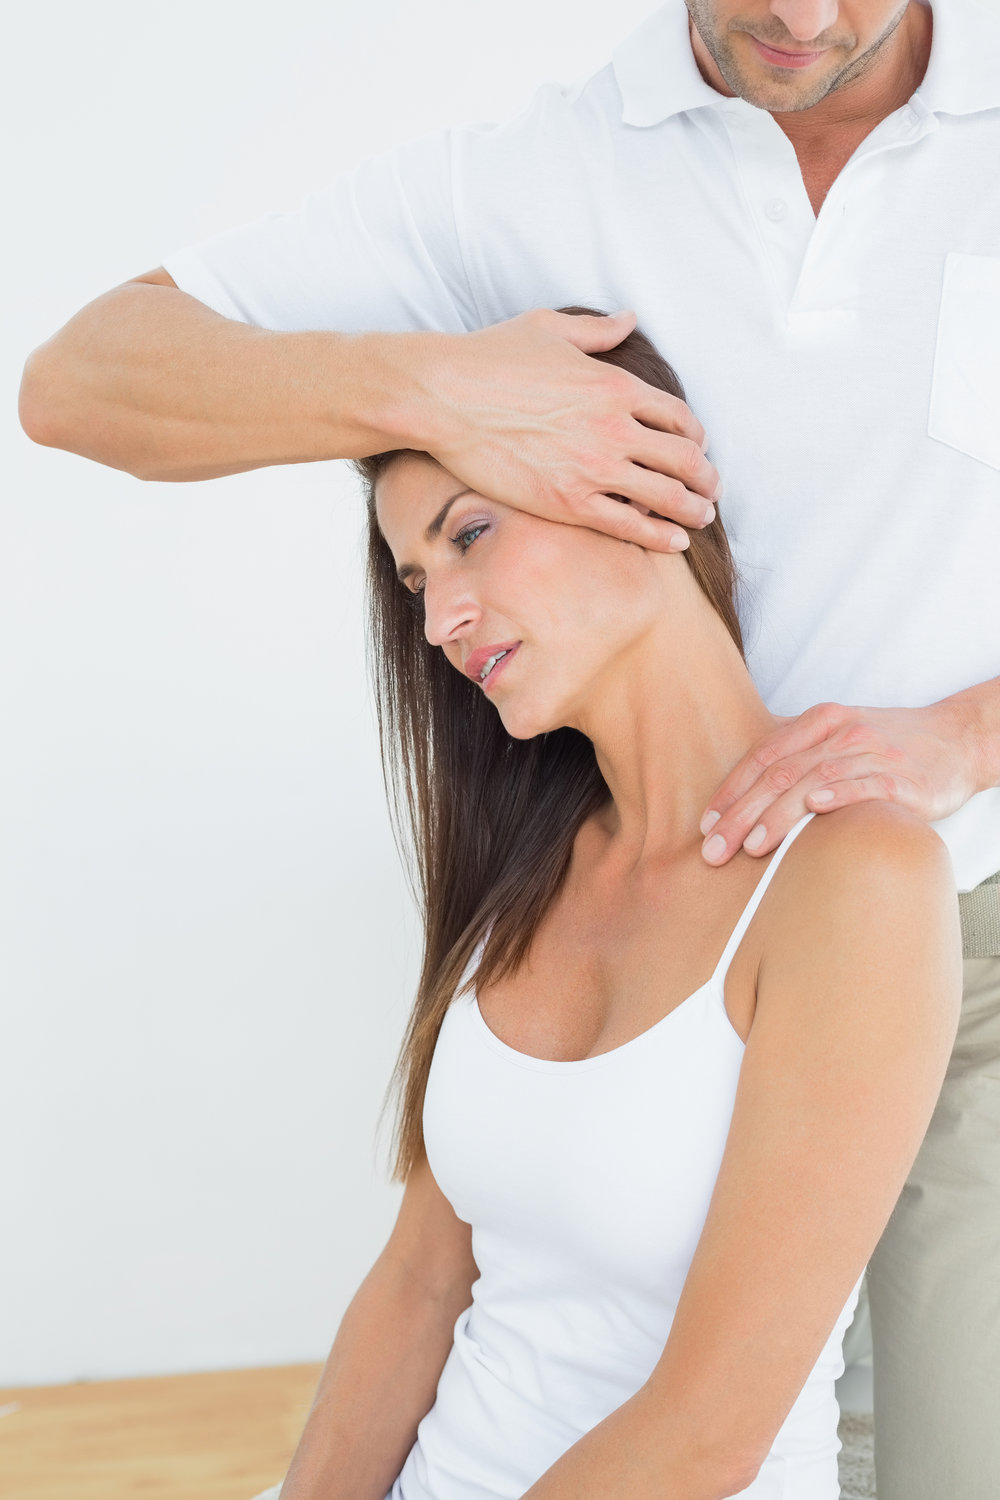 bigstock-Male-chiropractor-doing-neck-a-55674827 (1).jpg